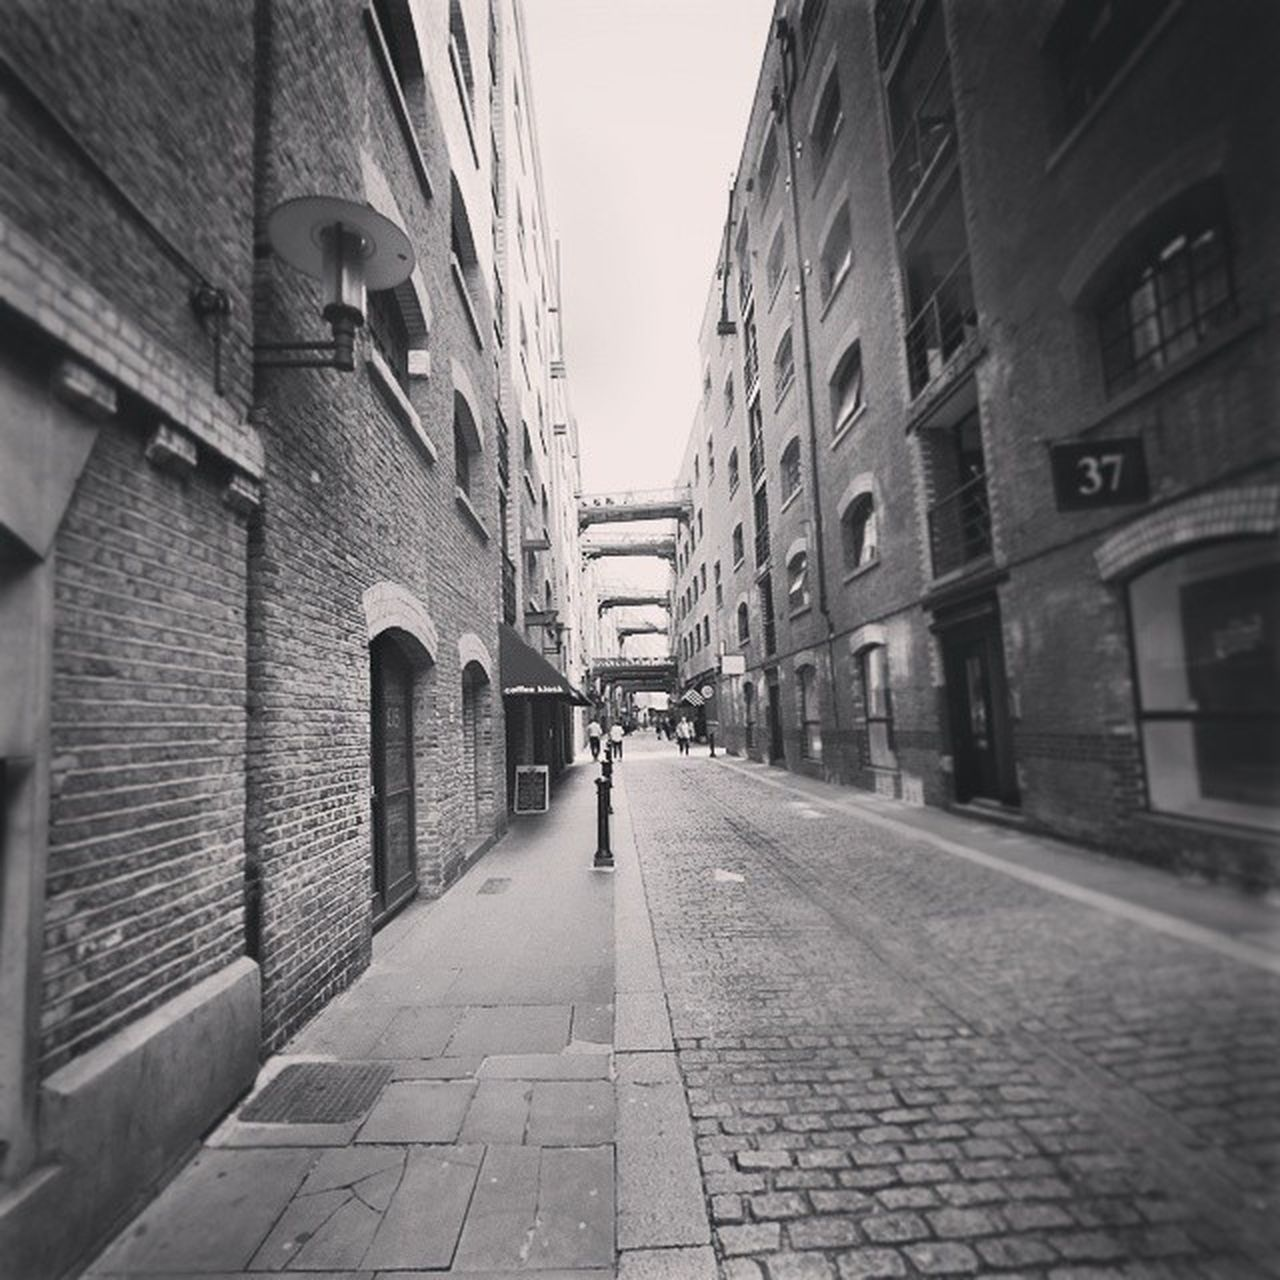 HiddenGemsofLondon